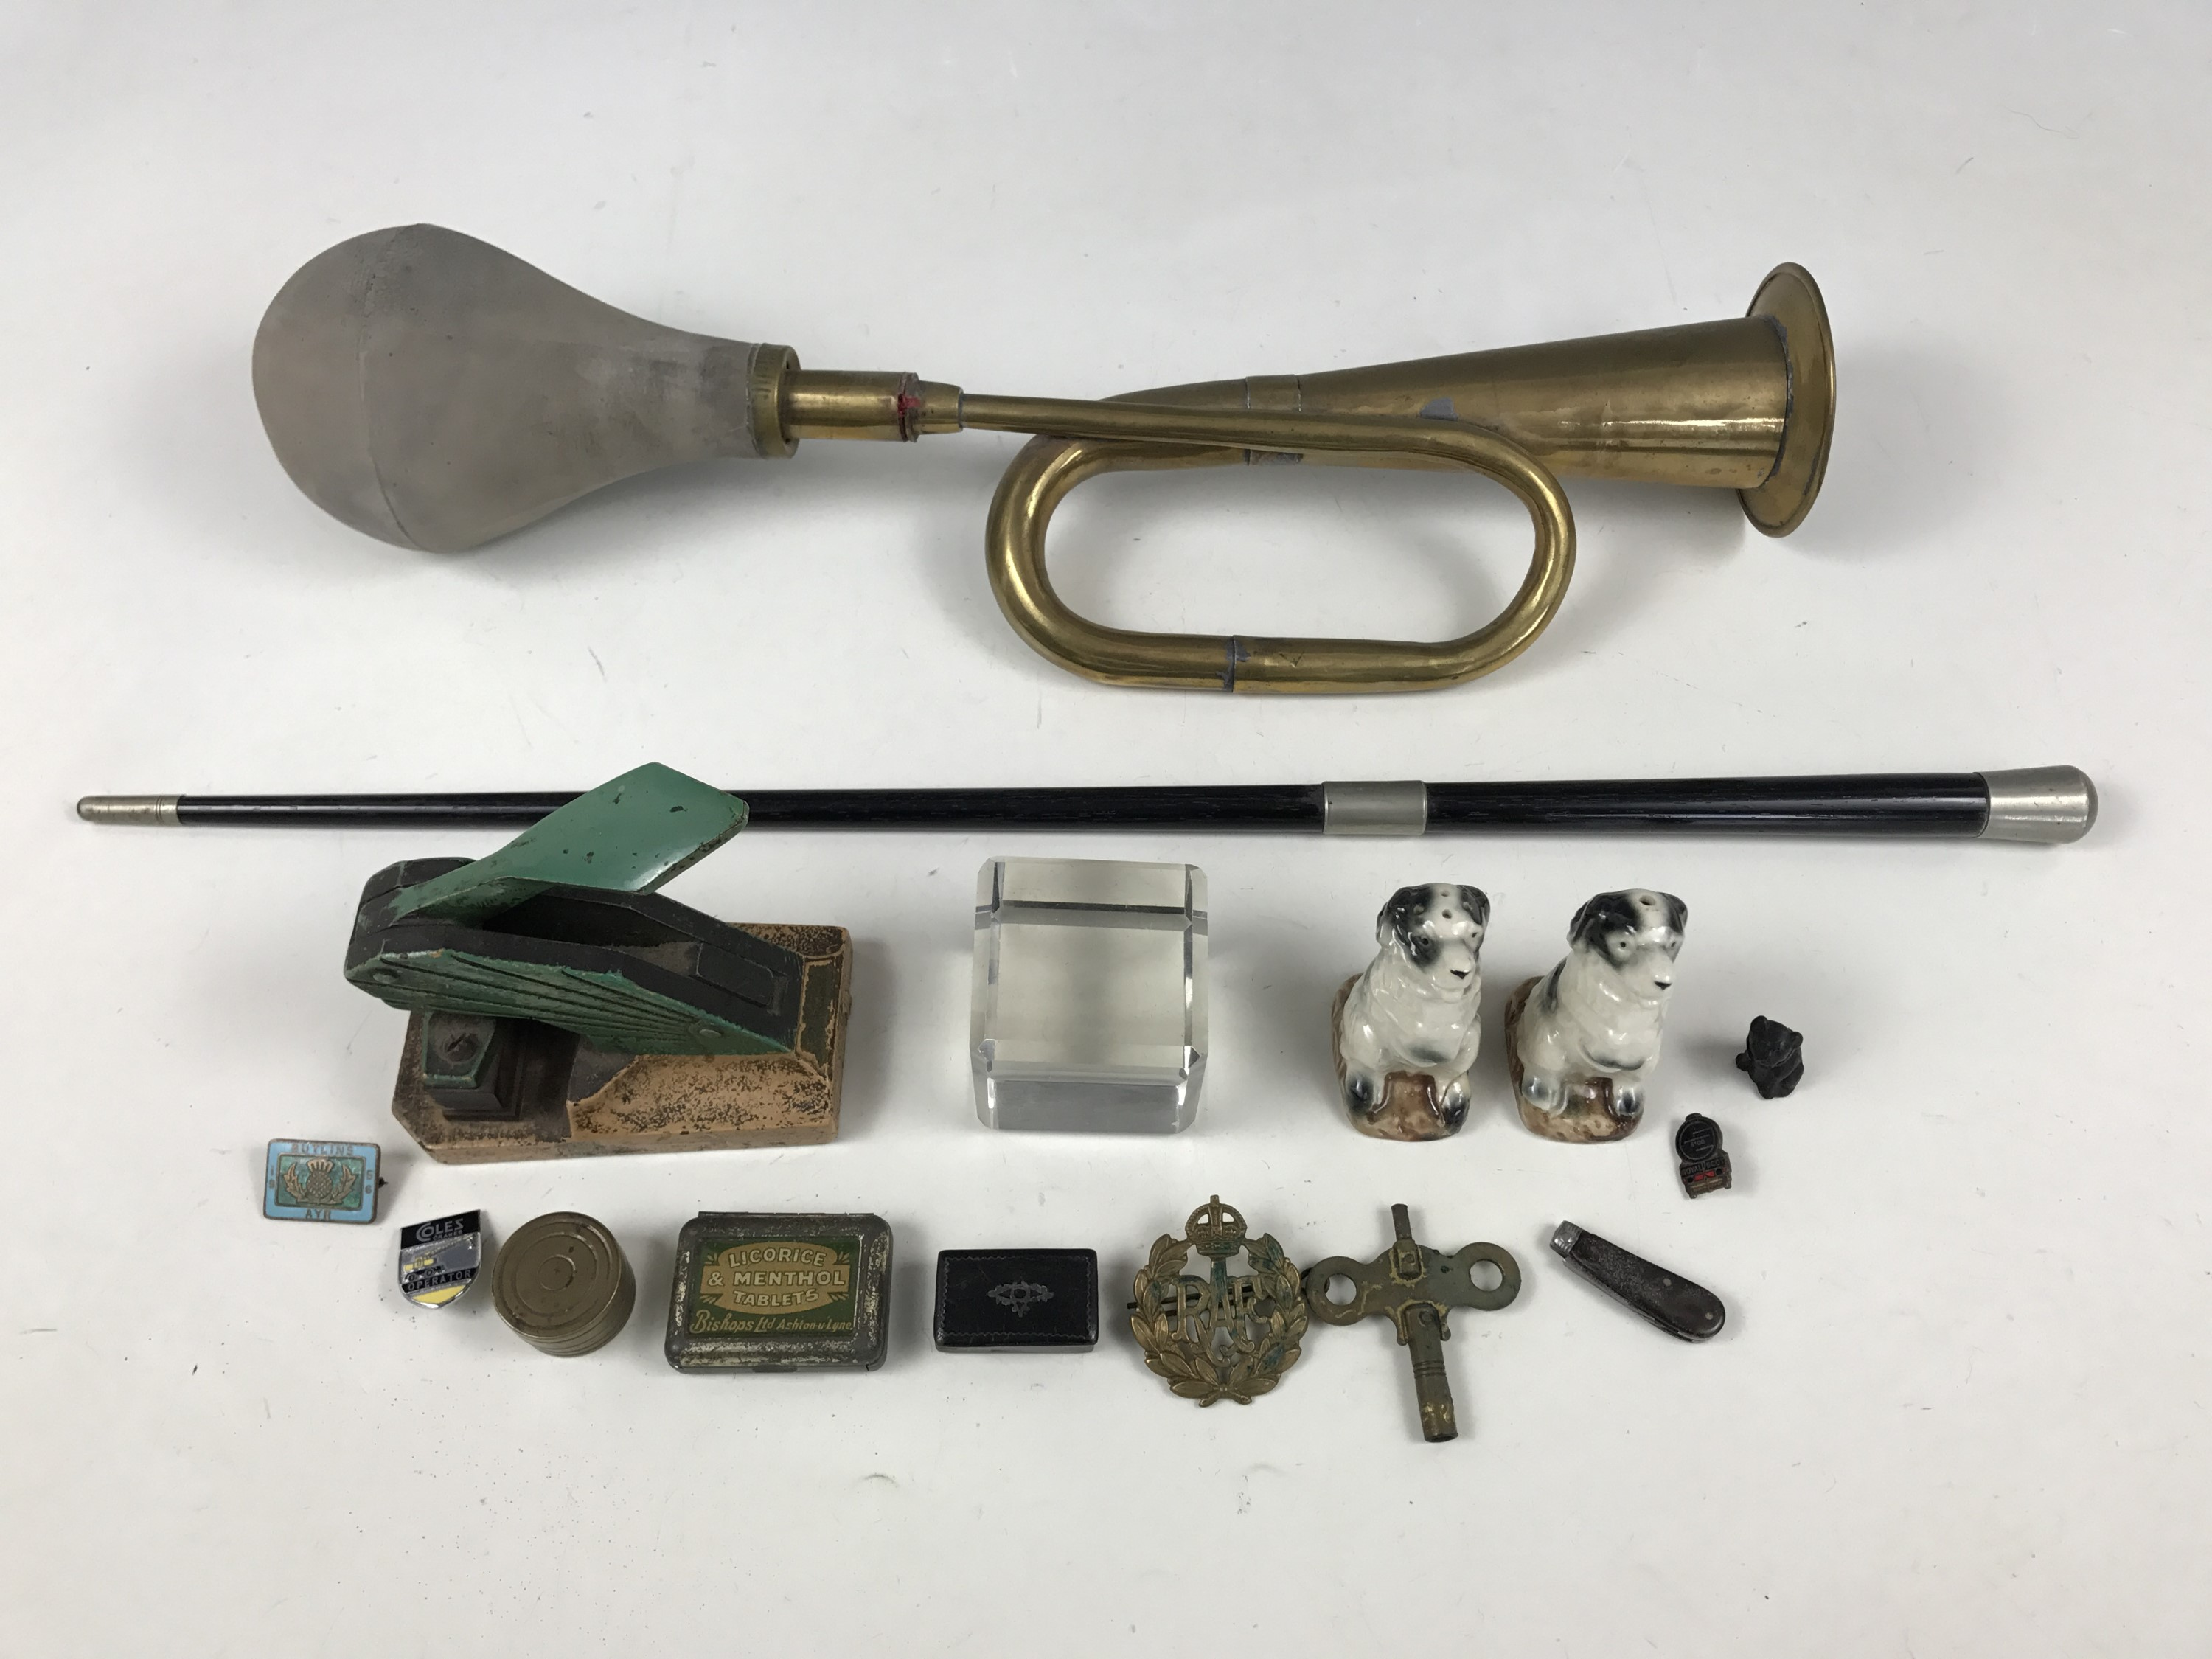 Lot 4 - Sundry collectors' items including a conductor's baton, Butlins and other badges and a 19th